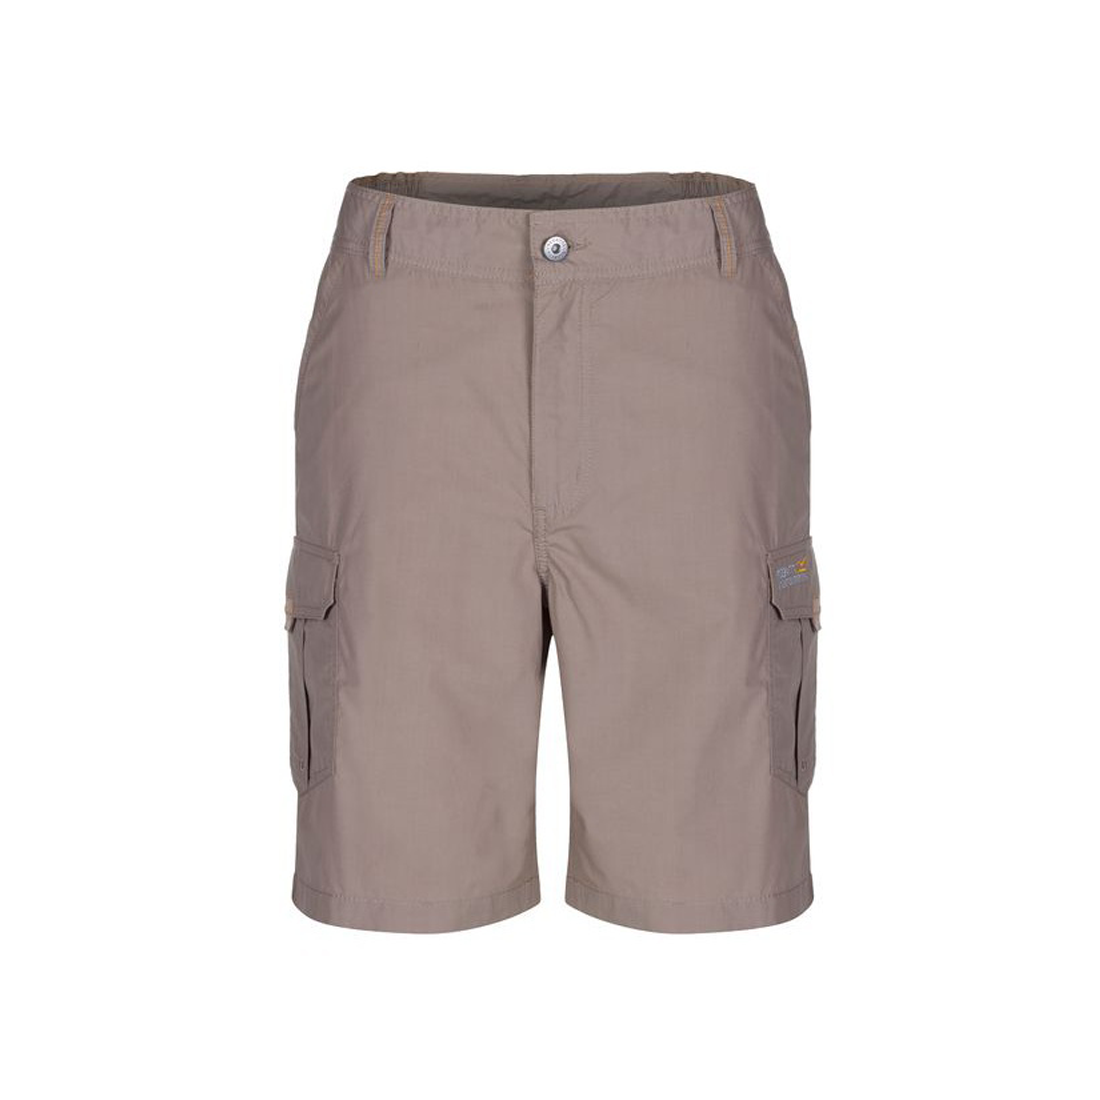 Шорты  Regatta Mens Delph Short мужские (1NY RMJ160)